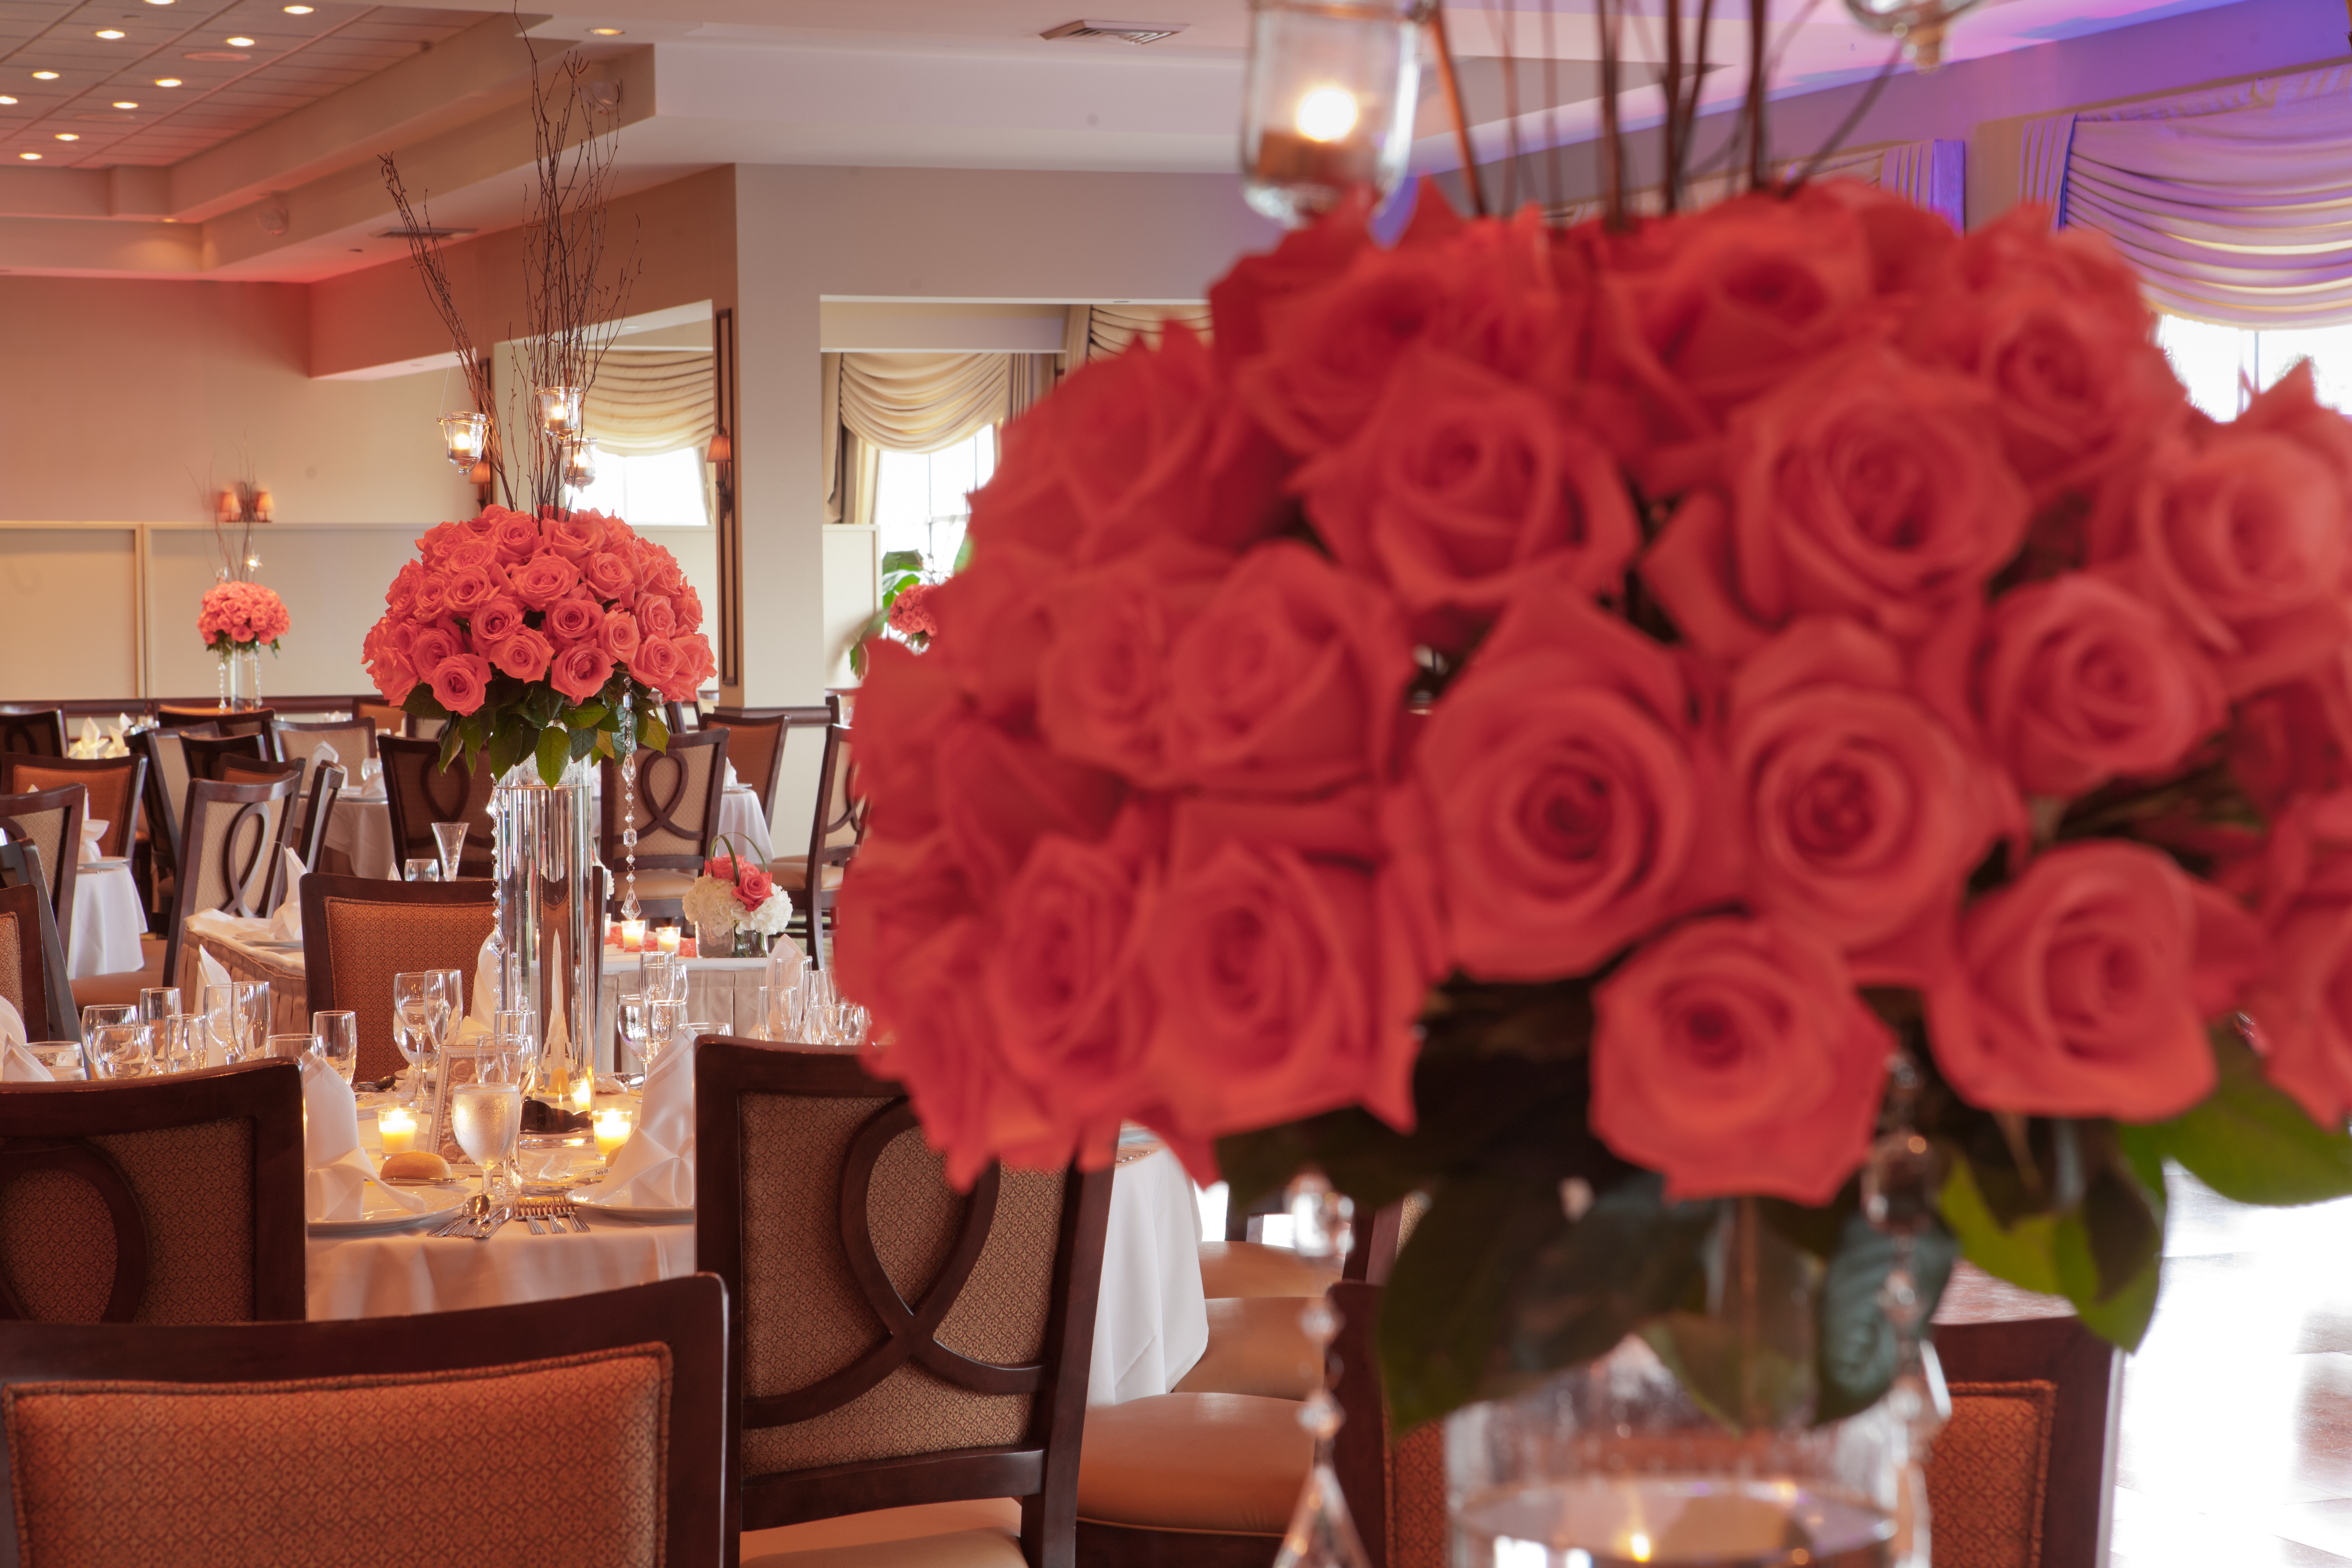 Coral Roses Centerpieces